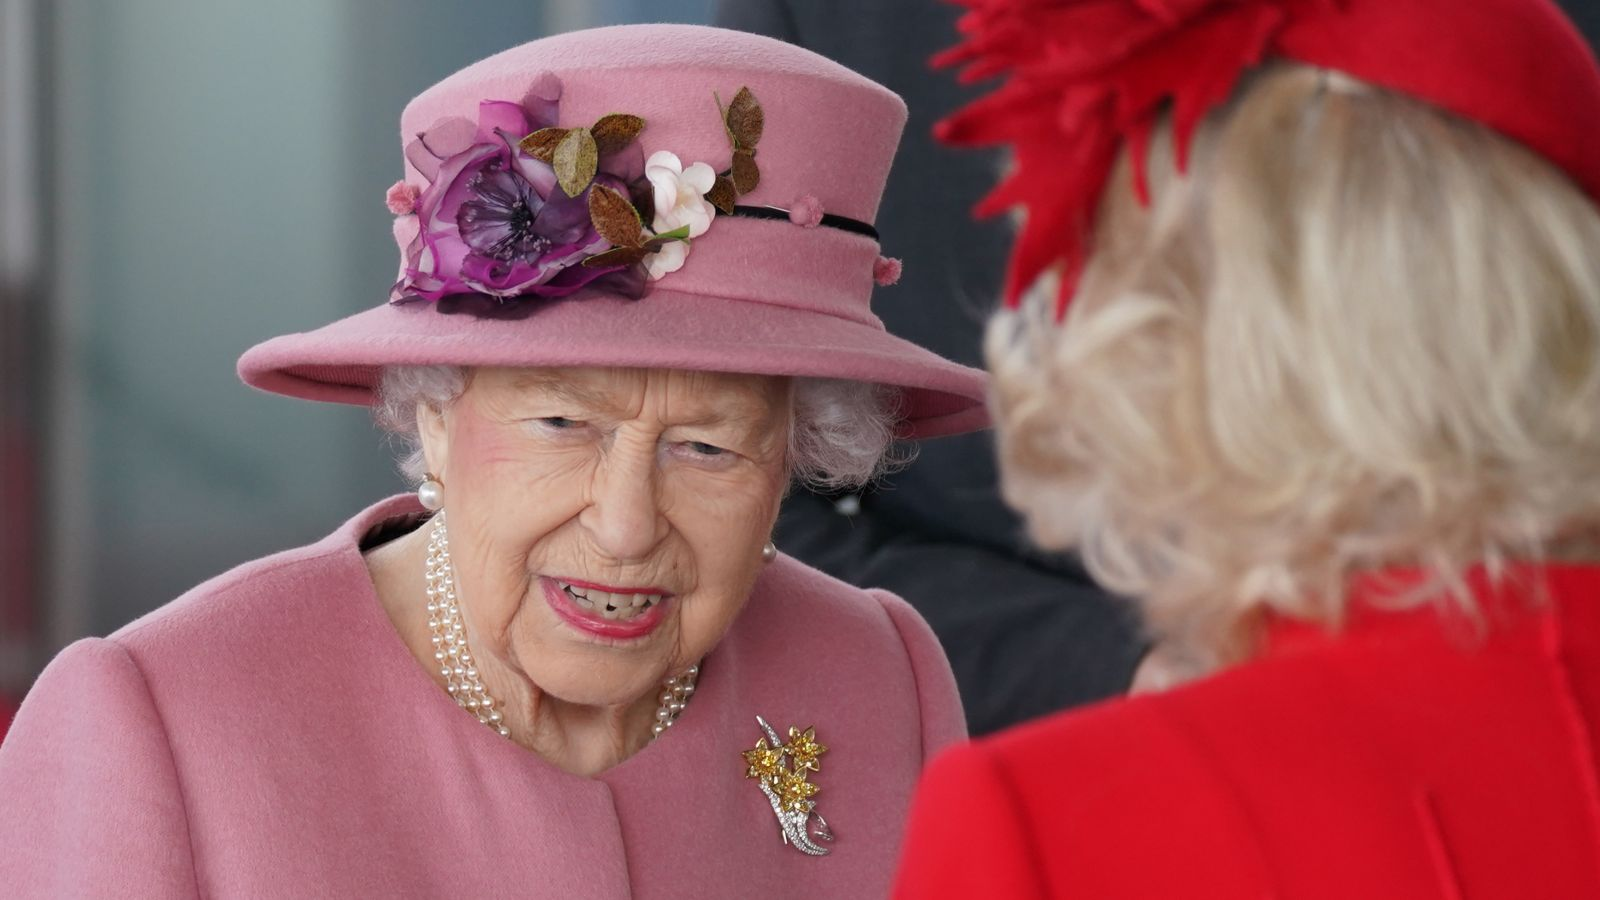 Queen 'irritated' by leaders who 'talk but don't do' on climate